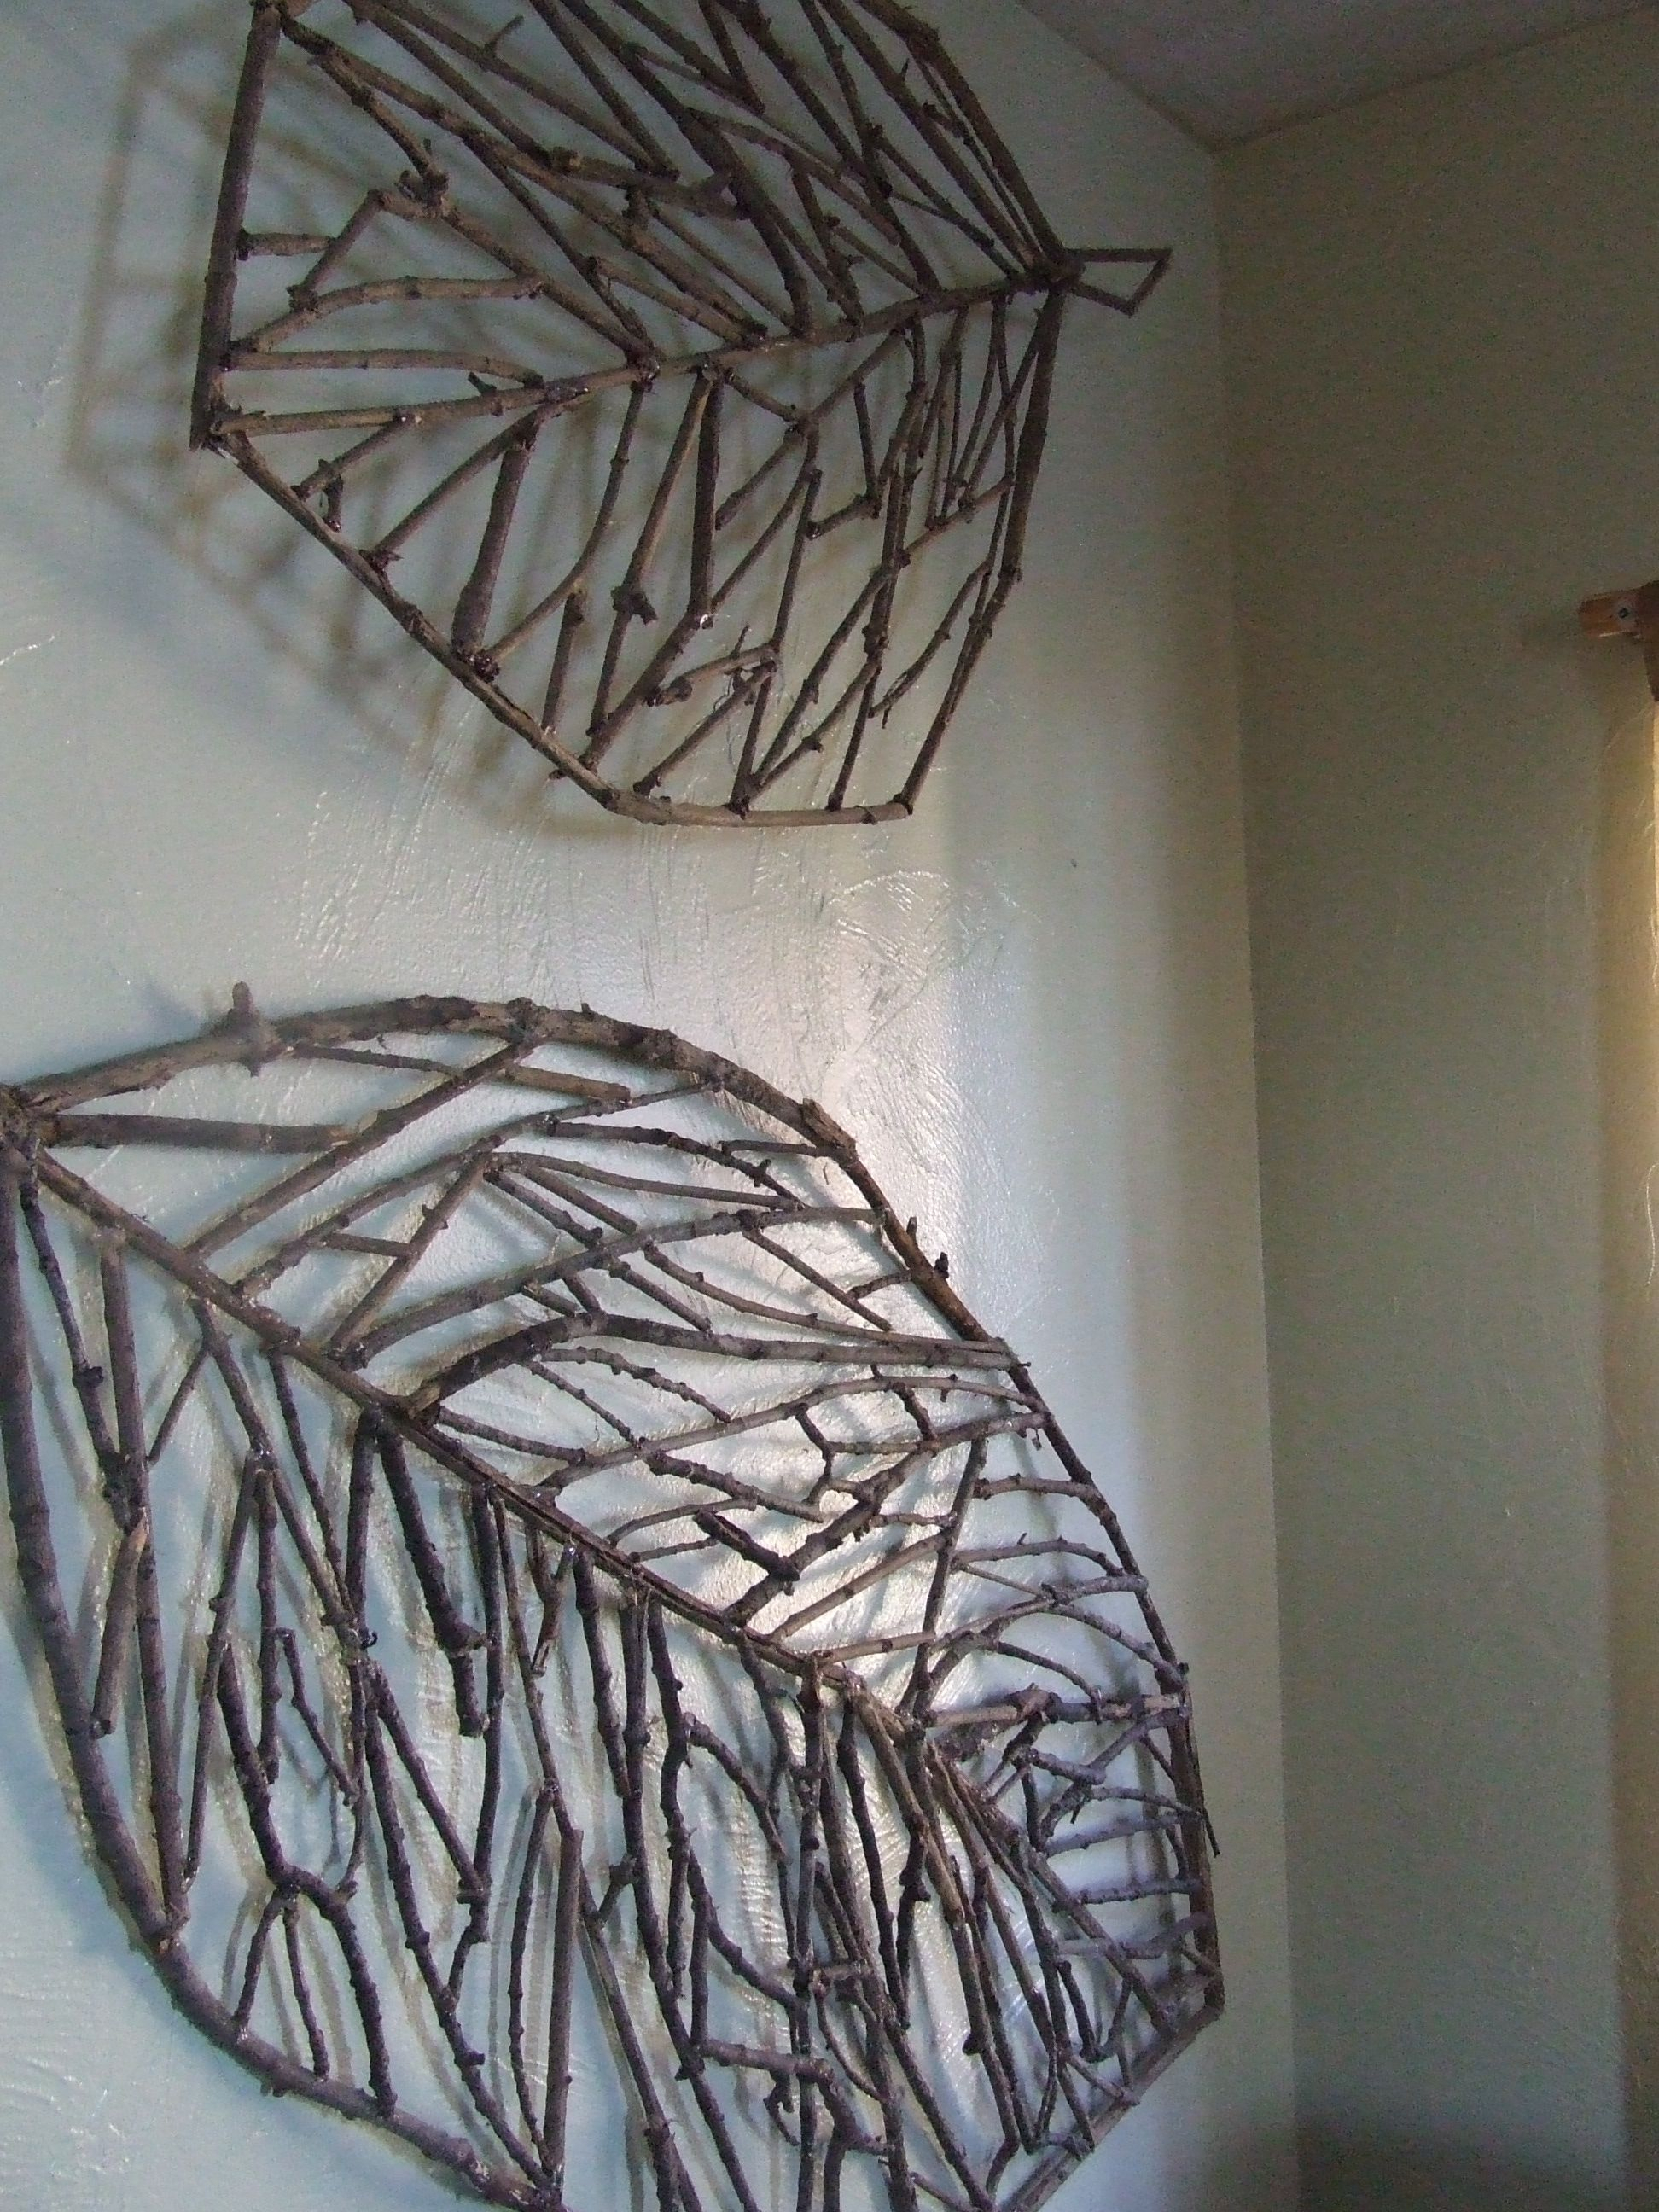 Twig Crafts With Tree Shell Leaves Sculpture Wall Decor (Gallery 11 of 20)